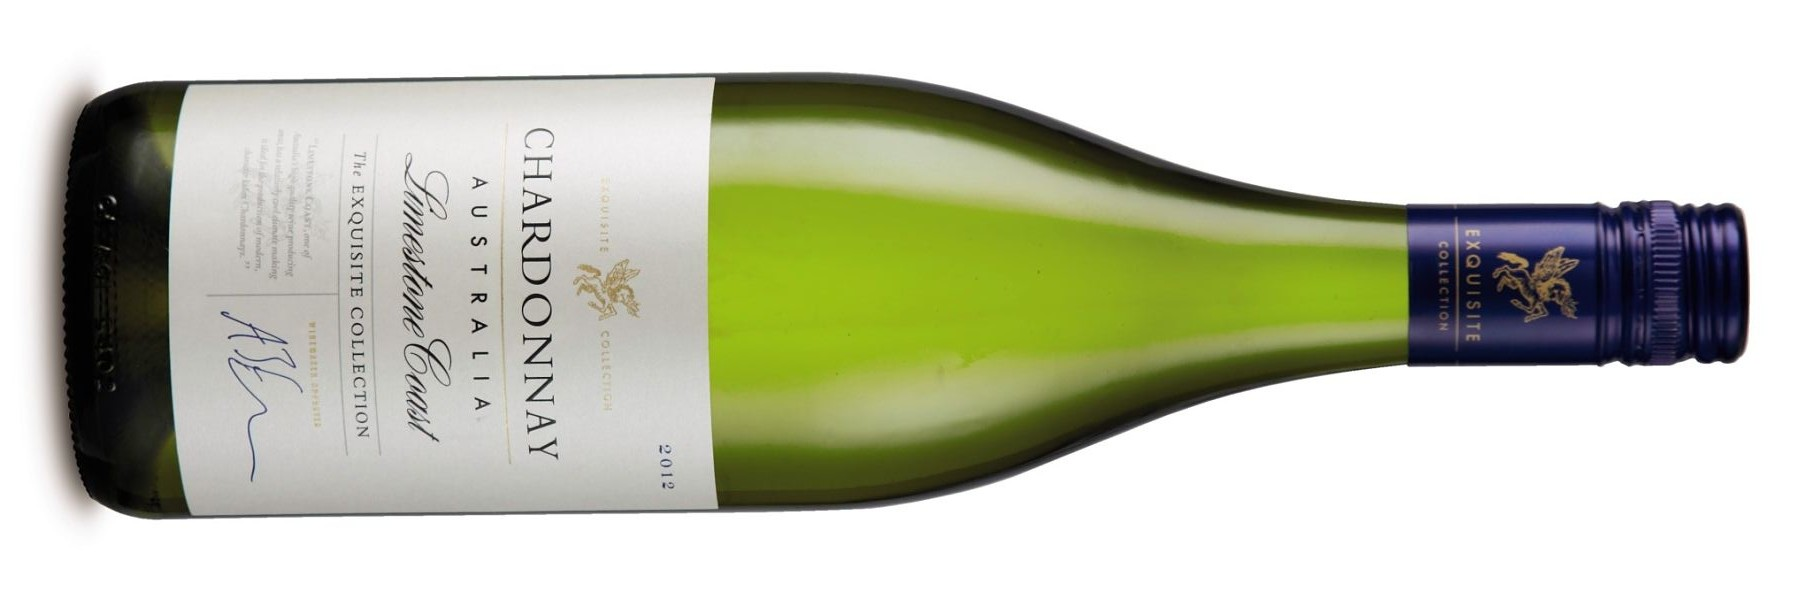 Aldi Exquisite Collection Limestone Coast Chardonnay